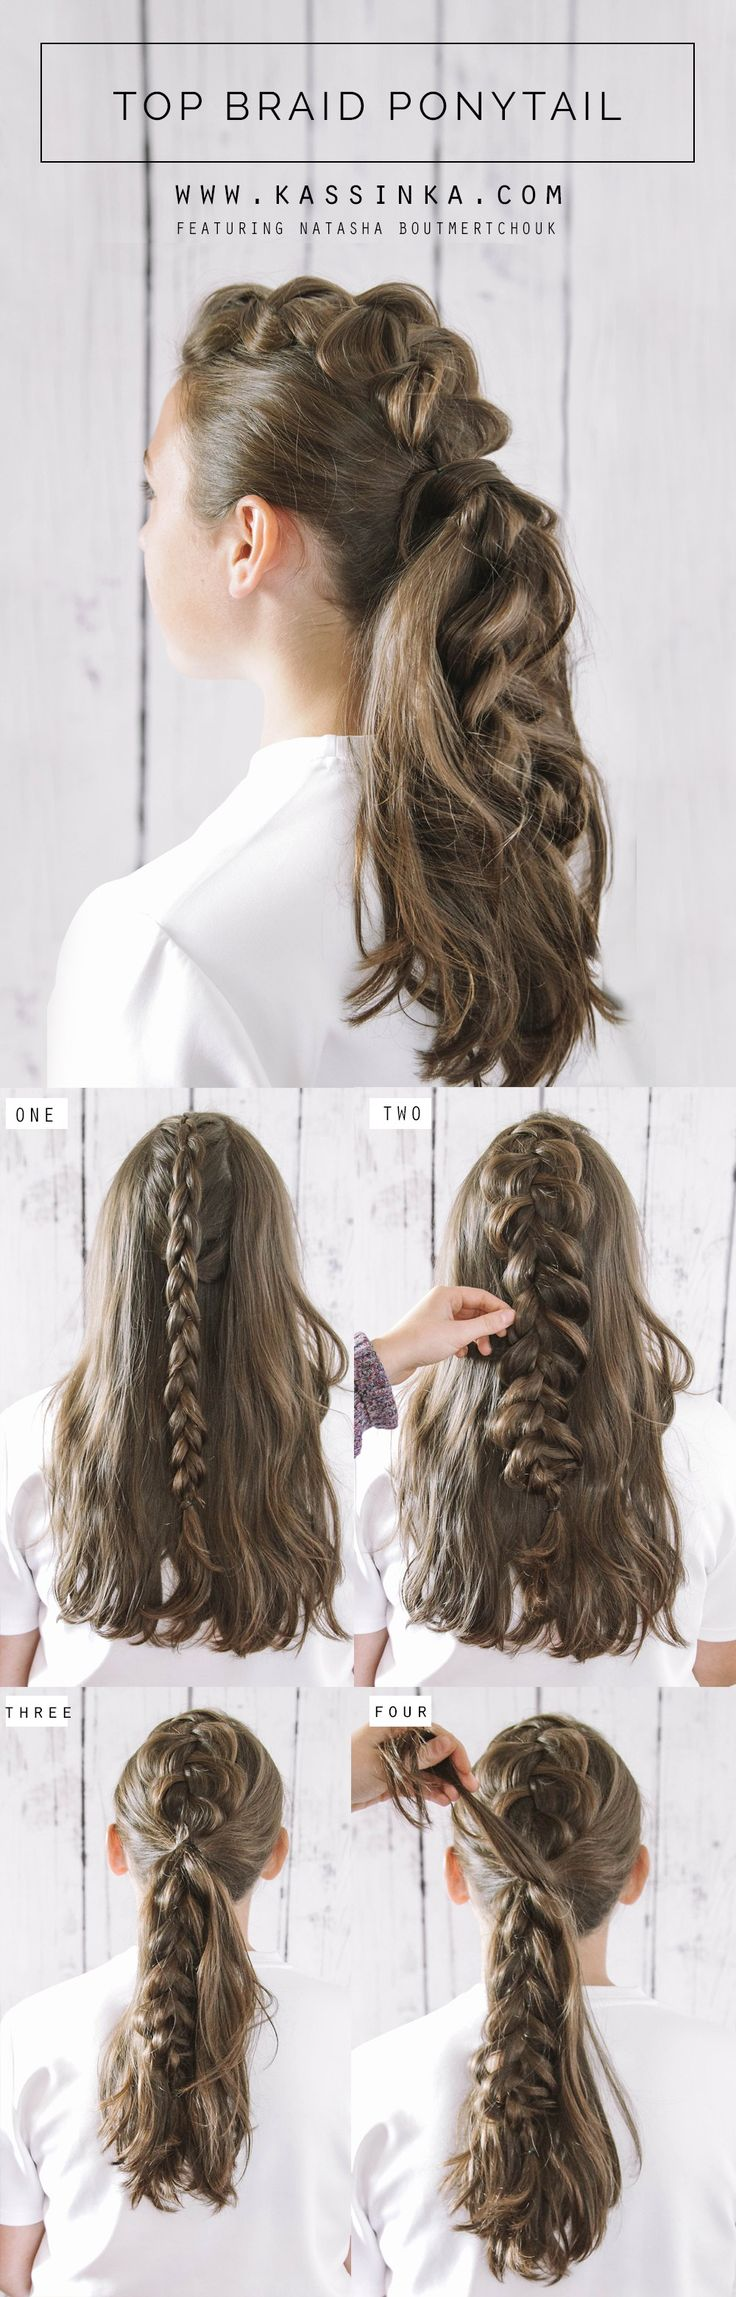 Top Braid Ponytail